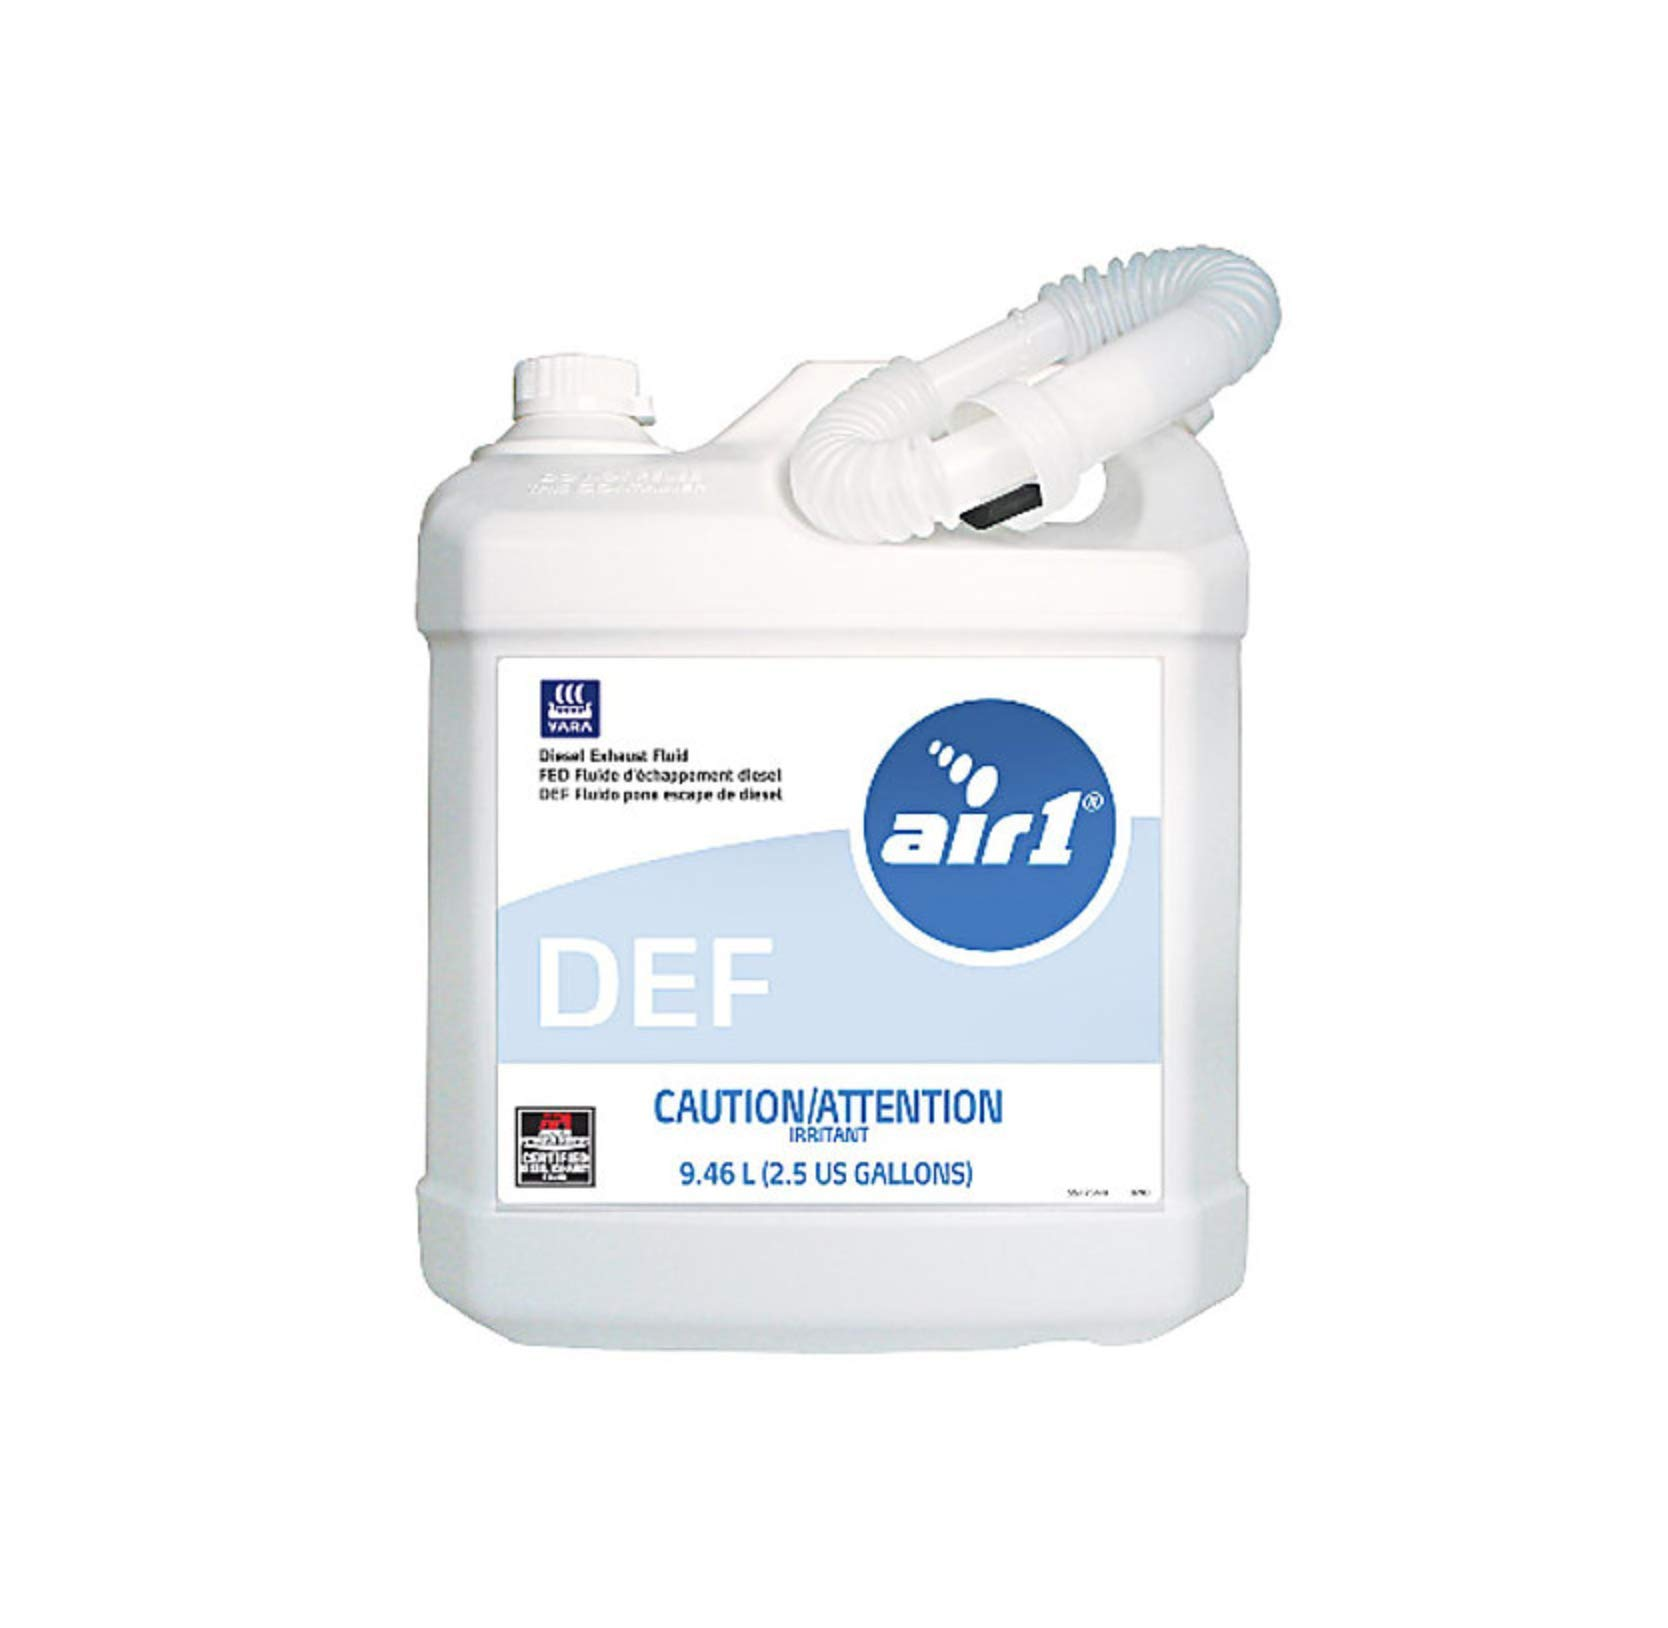 Air 1 Diesel Exhaust Fluid 96 Each x 2.5 Gallon Jugs by Silver Transfer STS-25NA1 by Air 1 (Image #1)